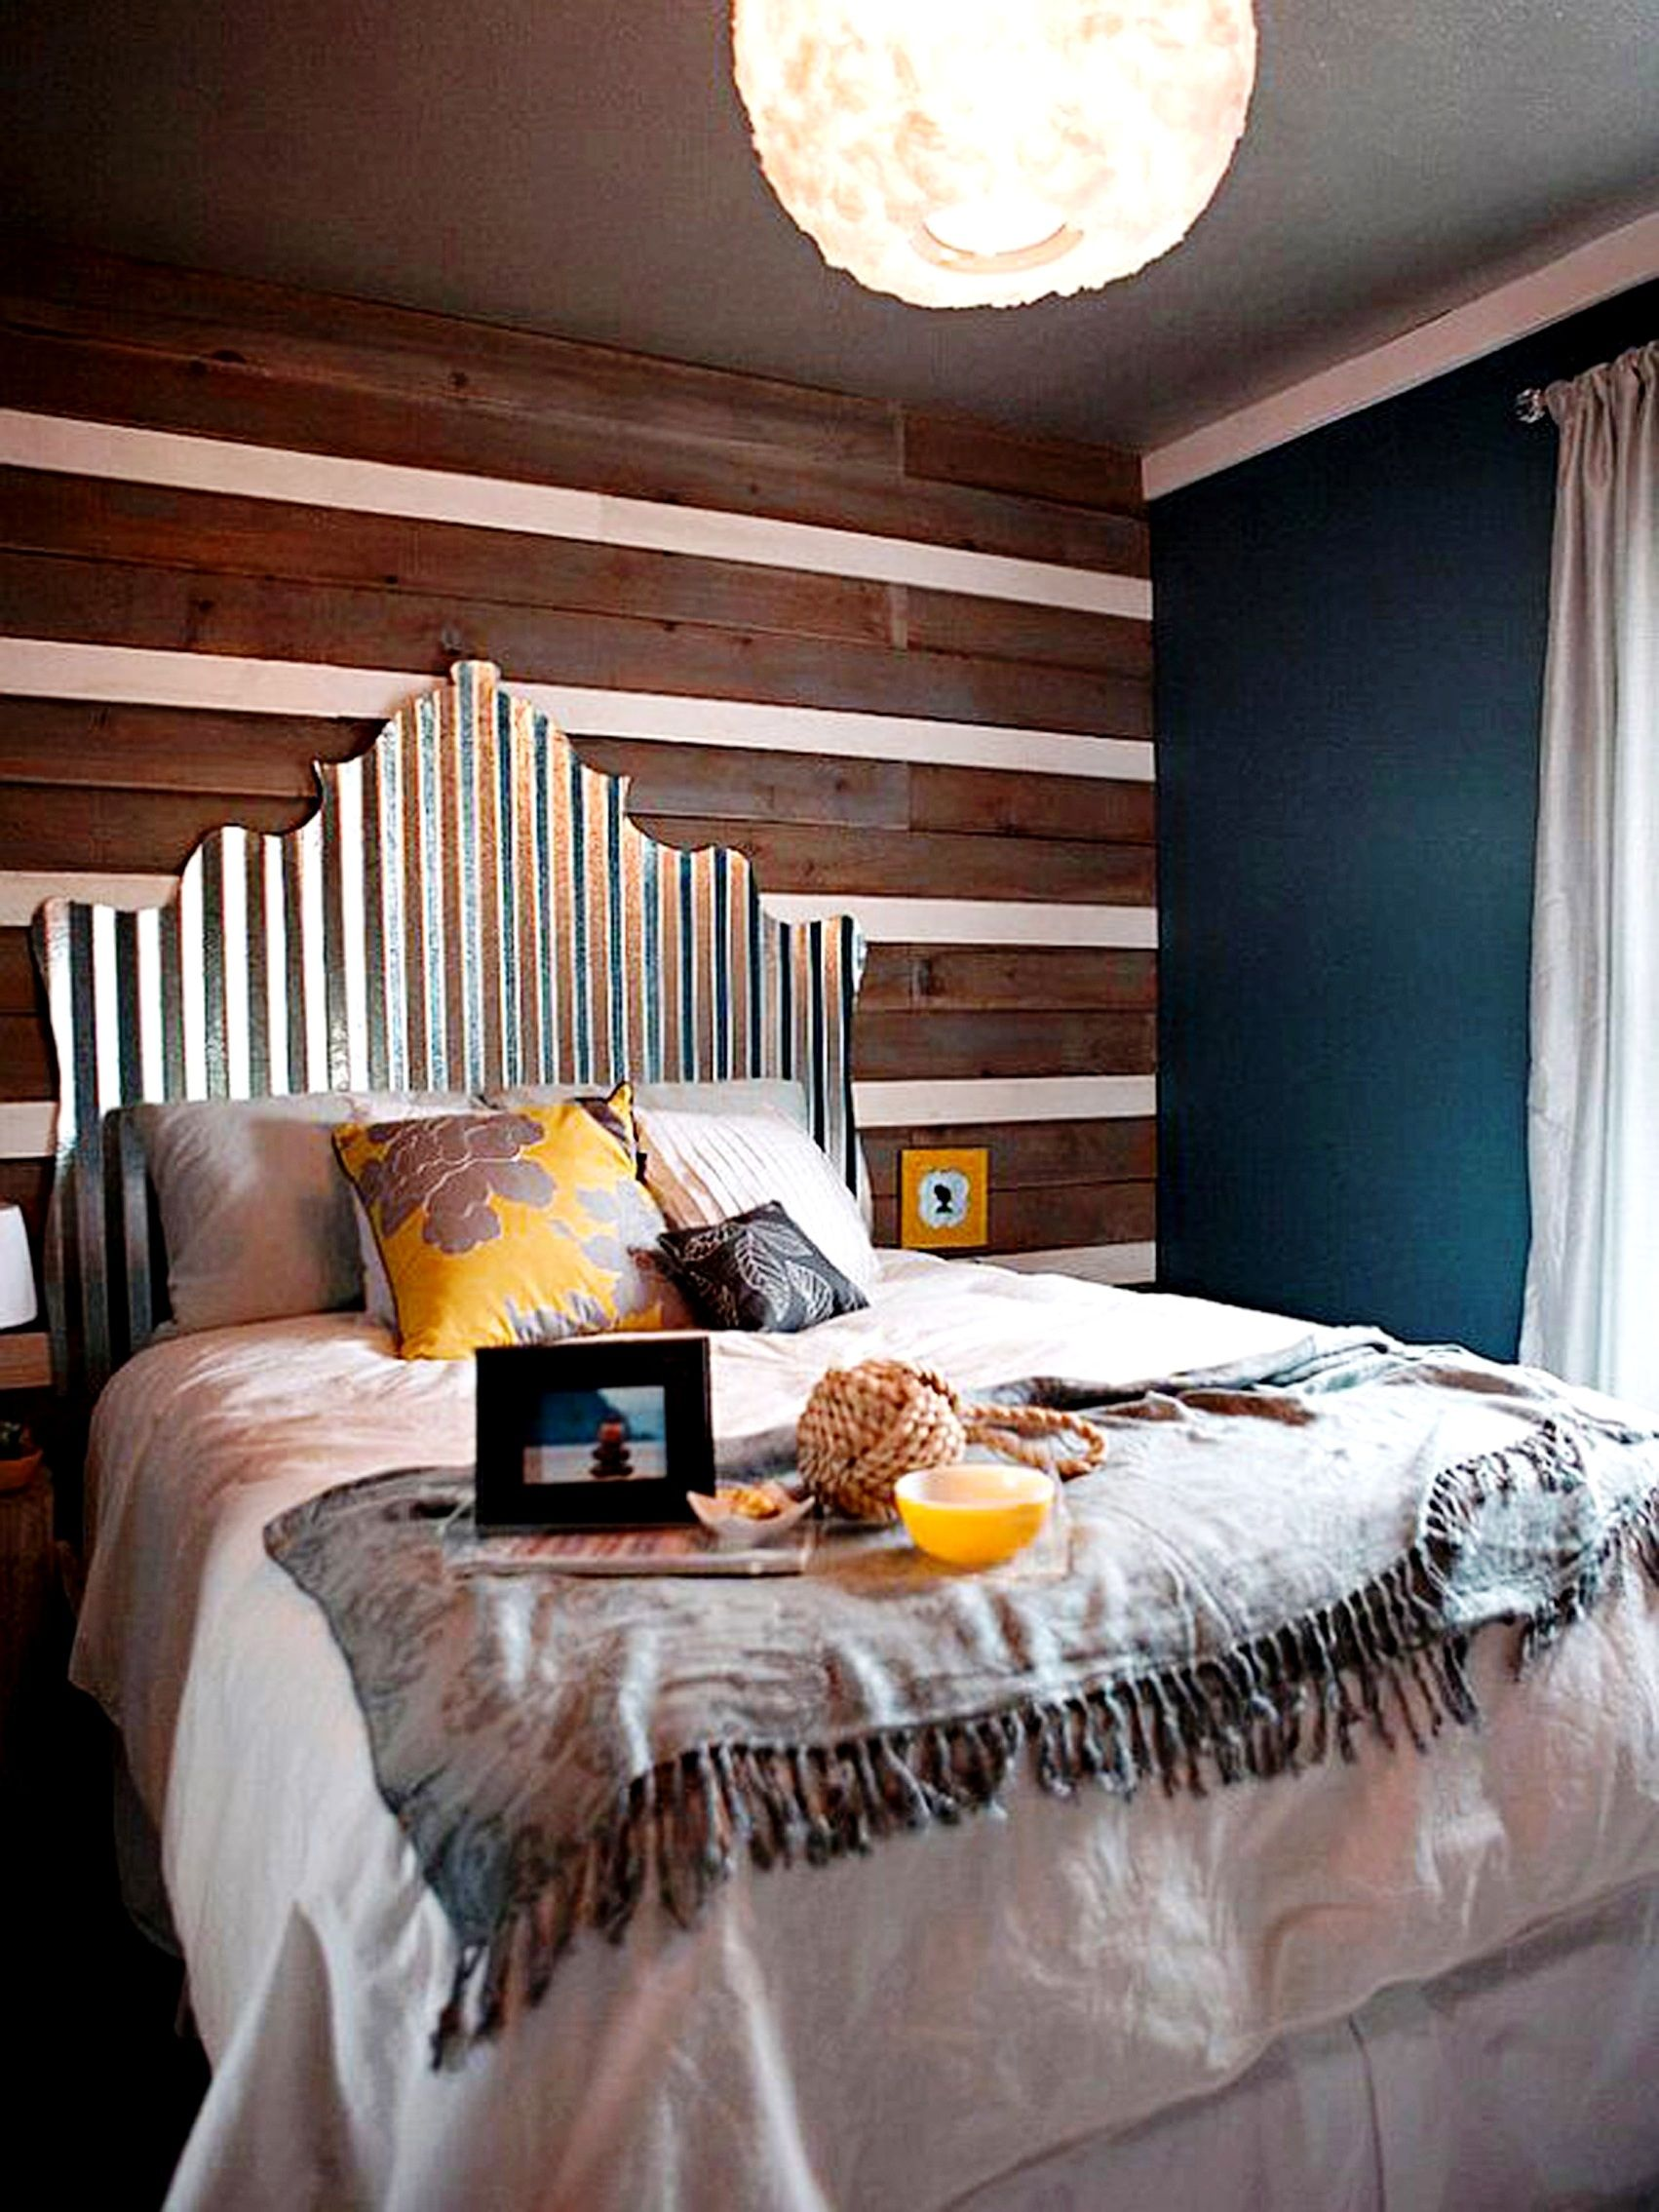 small bedroom ideas%0A Accent Wall Color For Small Bedroom